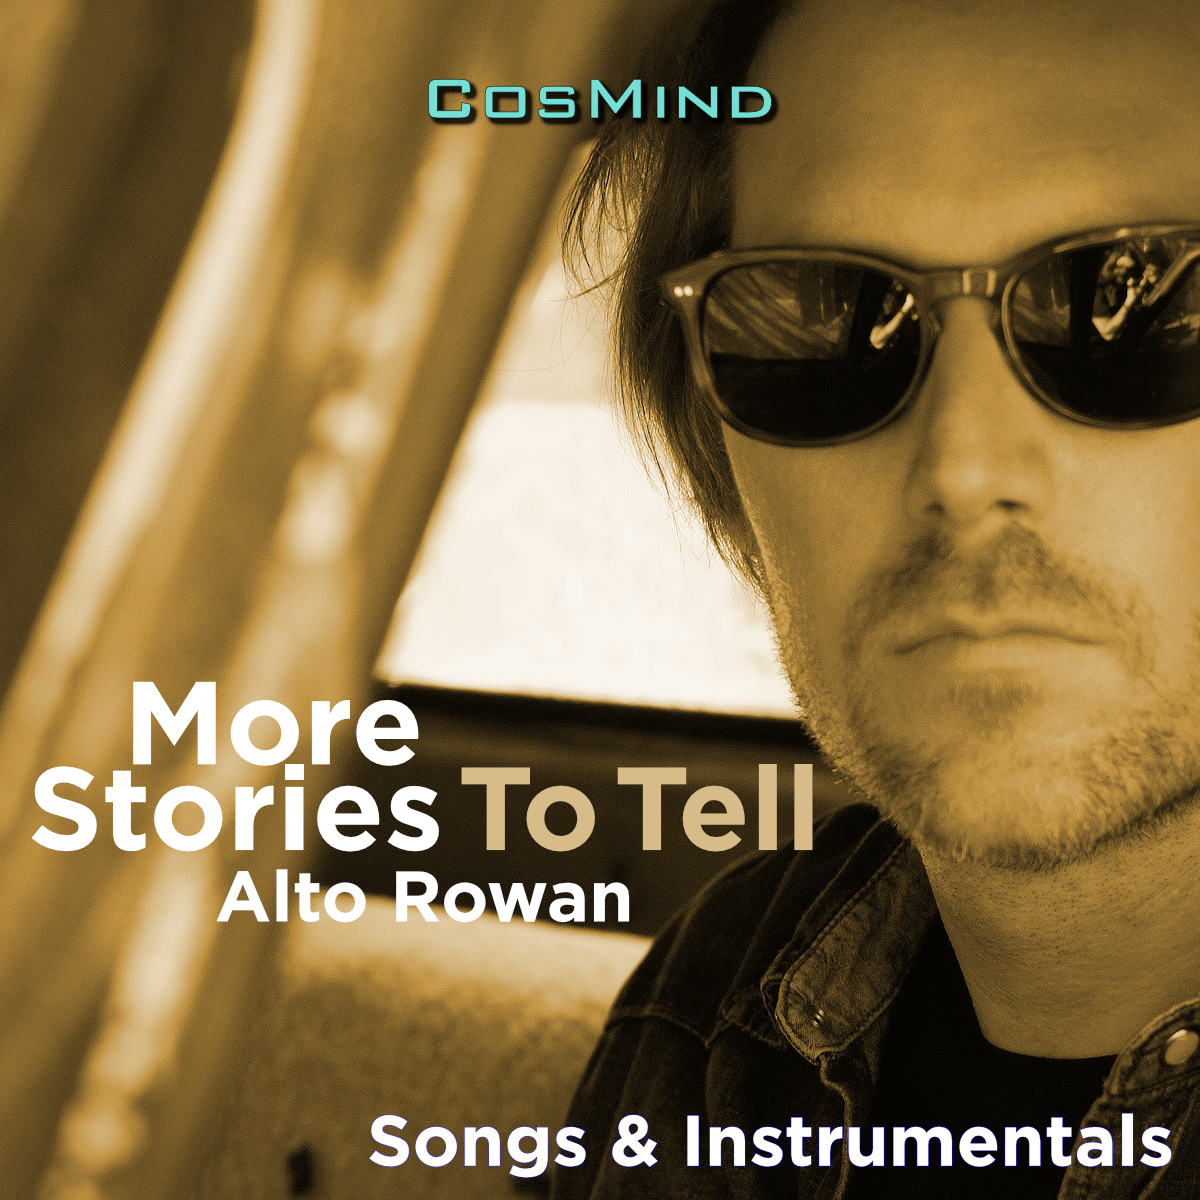 More Stories To Tell - Songs & Instrumentals